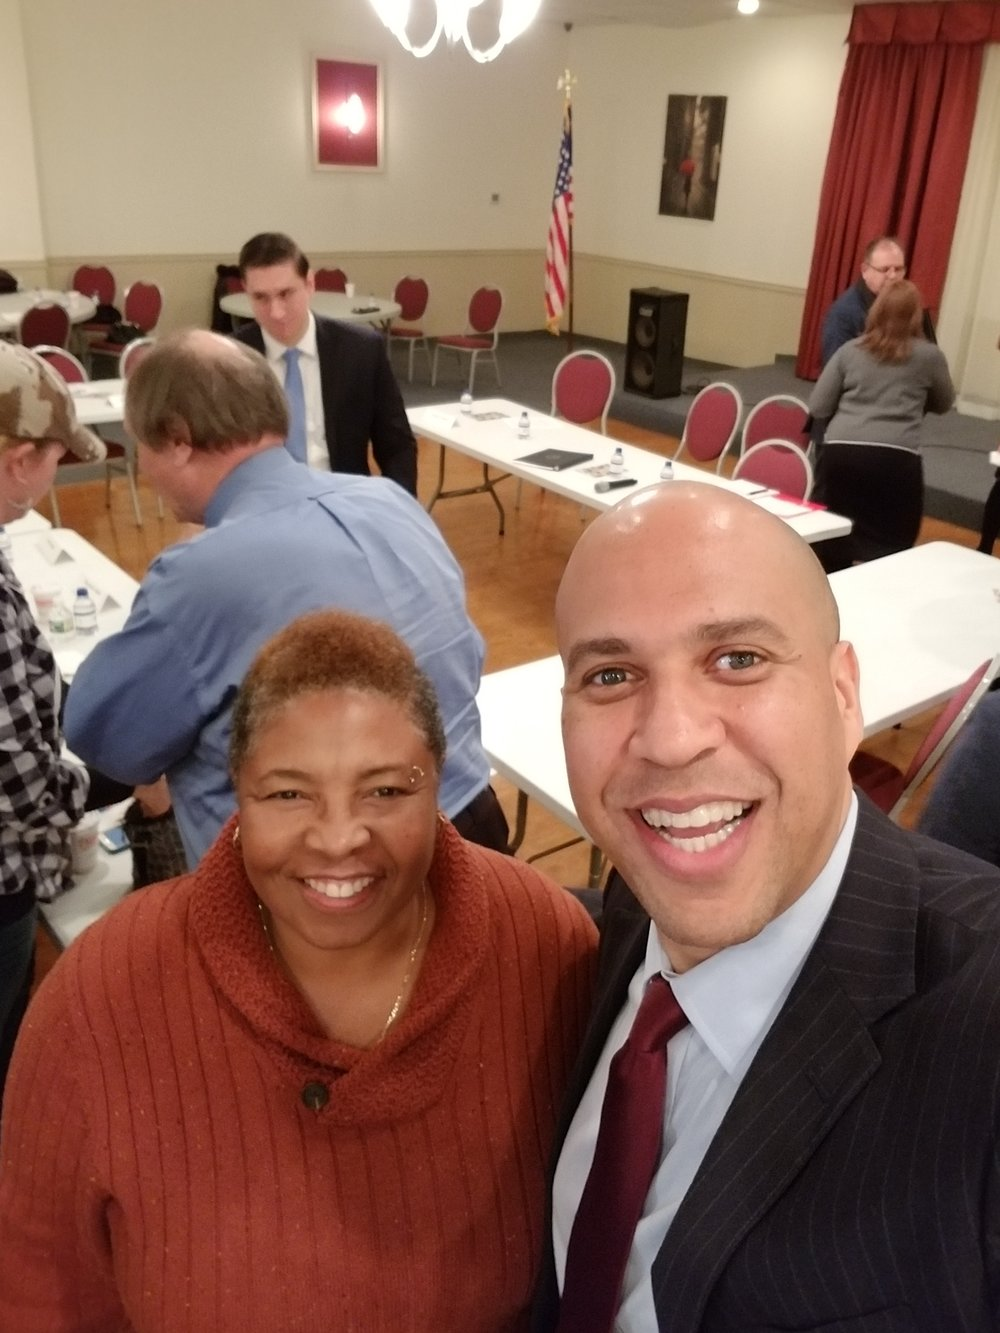 Verna Martin, Director of THE VETS CHAT AND CHEW PROGRAM, at a discussion seminar with Senator Cory Booker, about how to better women veterans healthcare within the VA healthcare system. November 10, 2017 at Garfield Post 2867, Garfield, NJ.